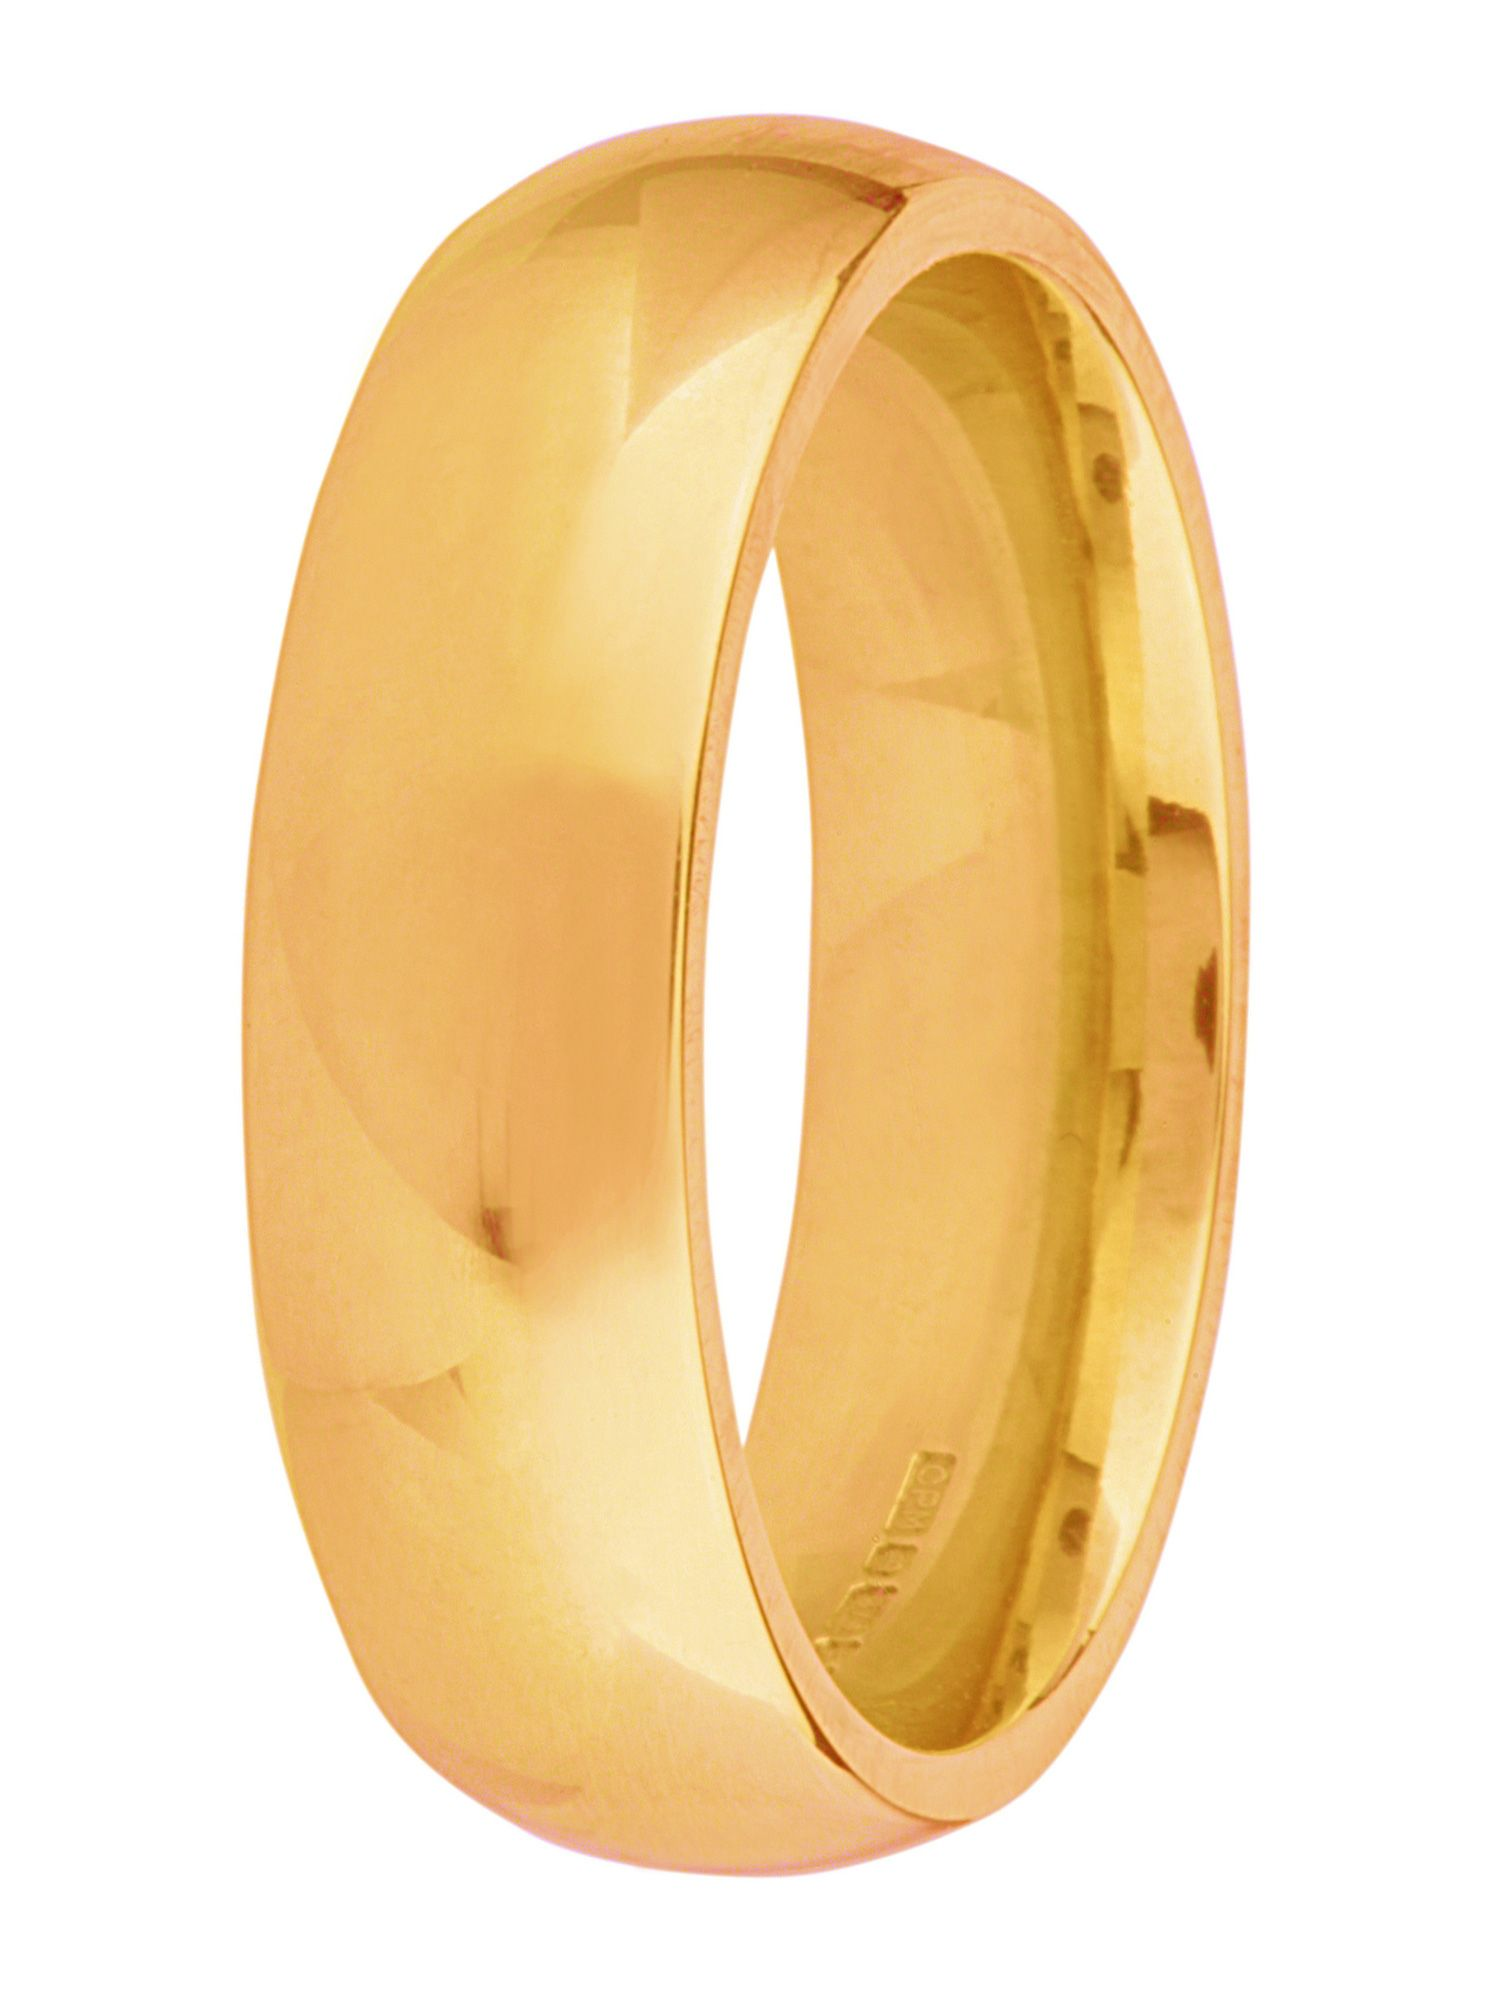 Grooms 9ct gold 7mm court wedding ring - Gold